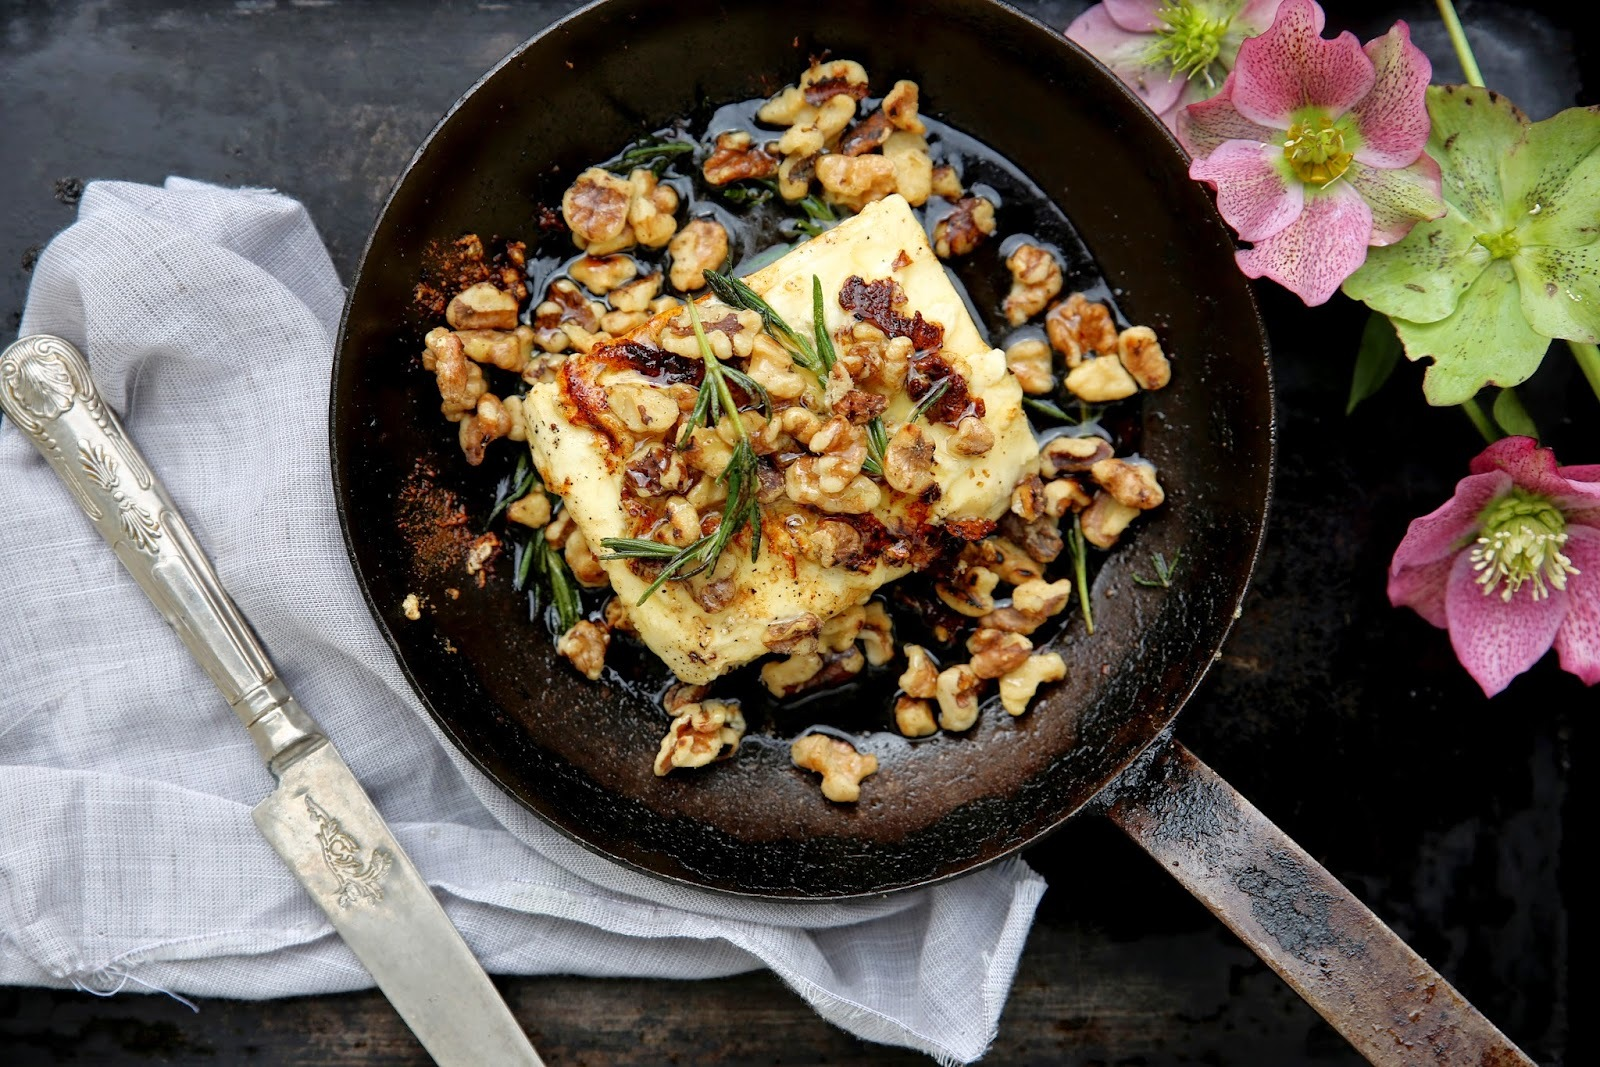 BAKED FETA WITH WALNUTS, ROSEMARY & HONEY